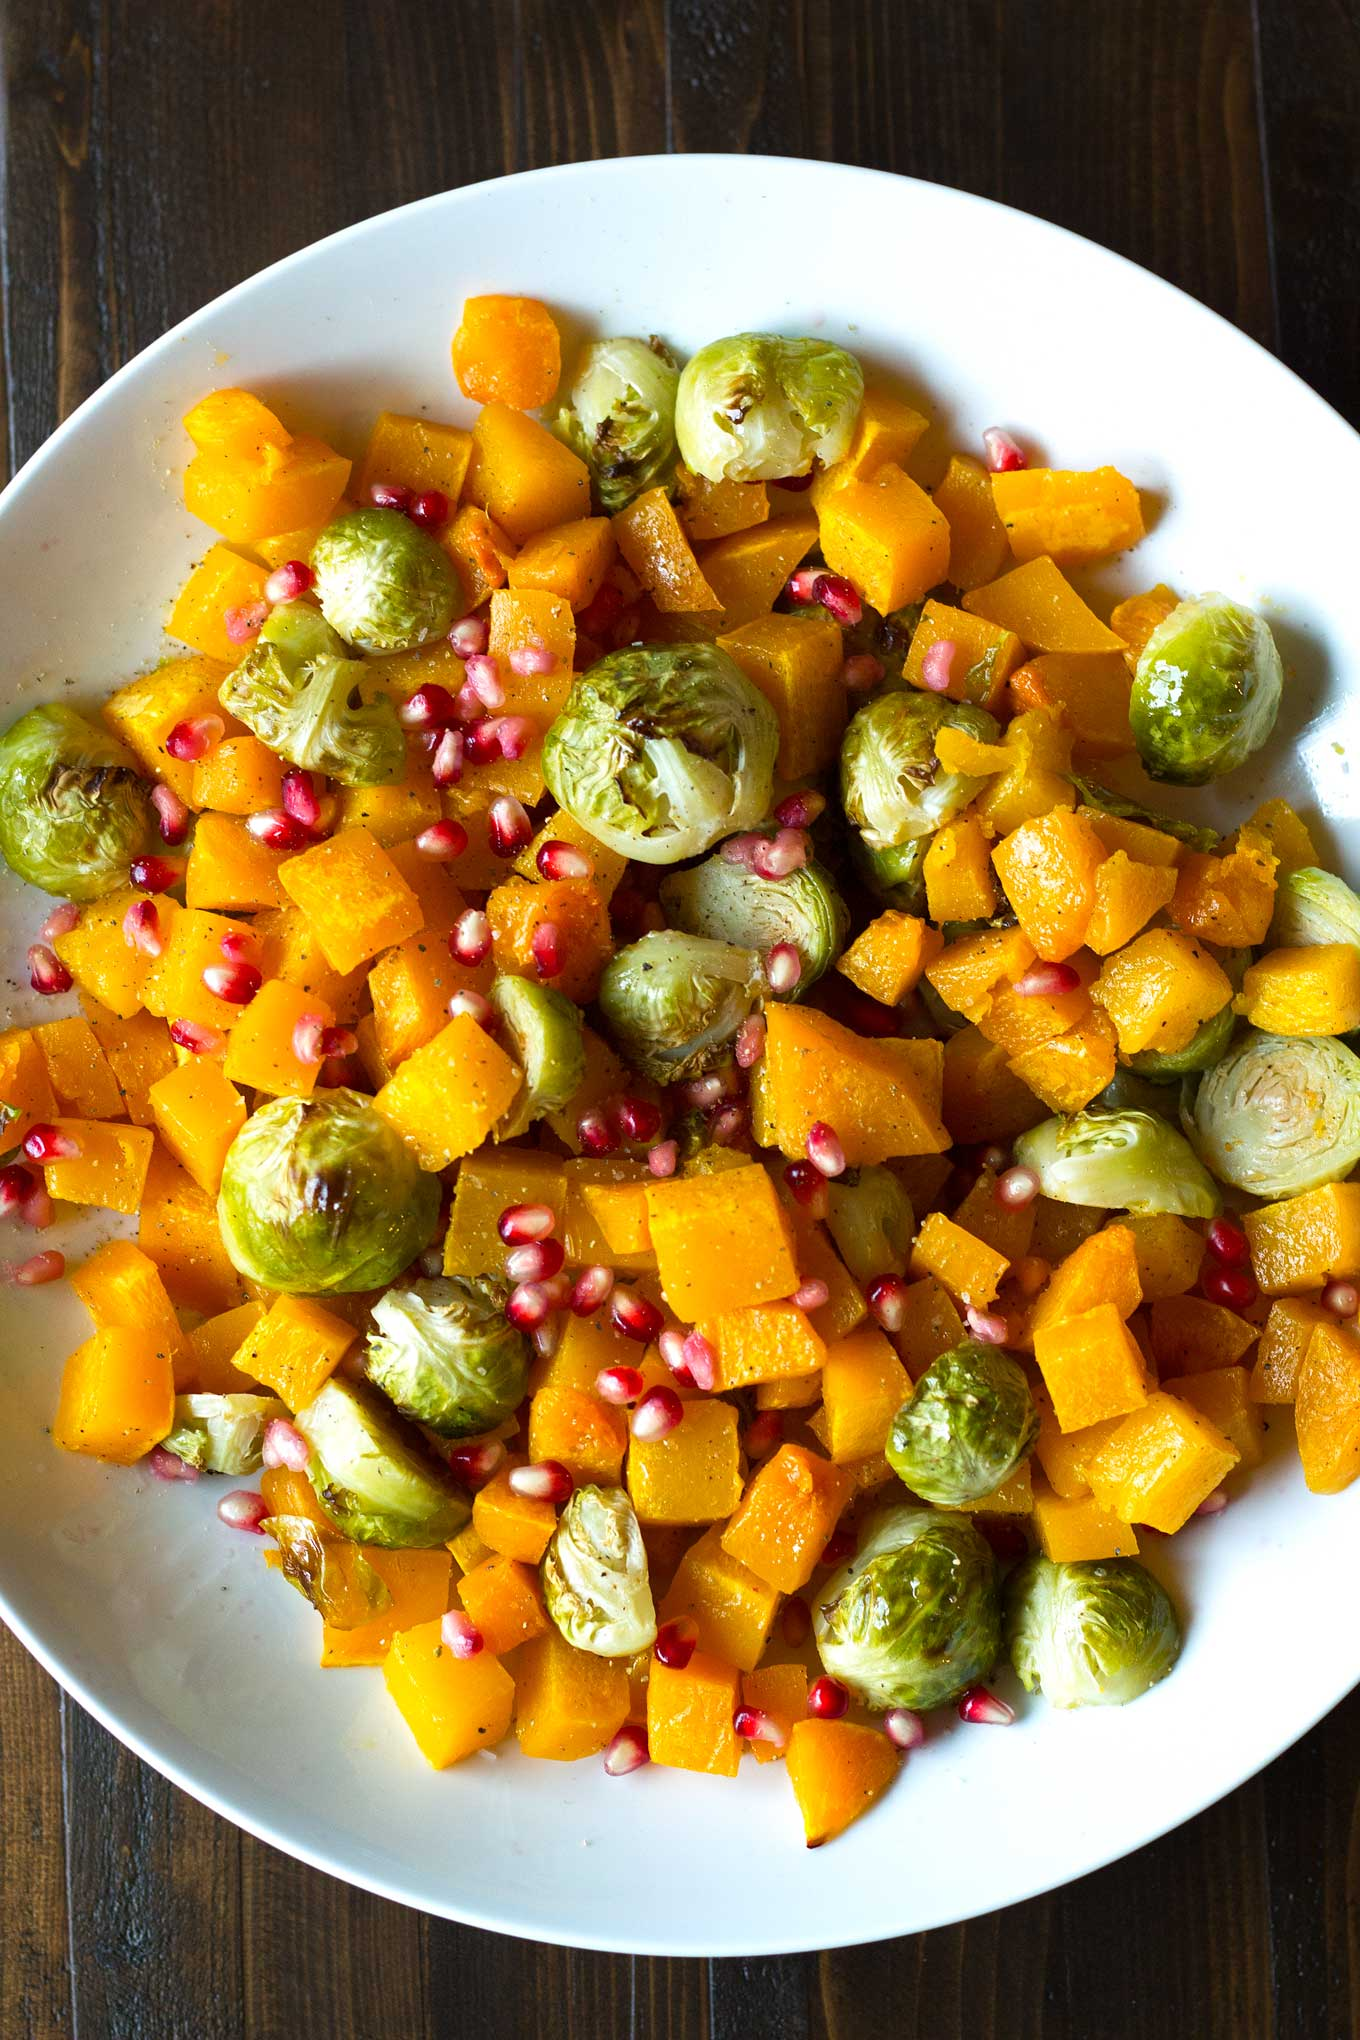 Fall Roasted Vegetables | Roasted butternut squash, brussels sprouts, sprinkled with pomegranate arils | Easy Vegan Side Dish | https://eatwithinyourmeans.com